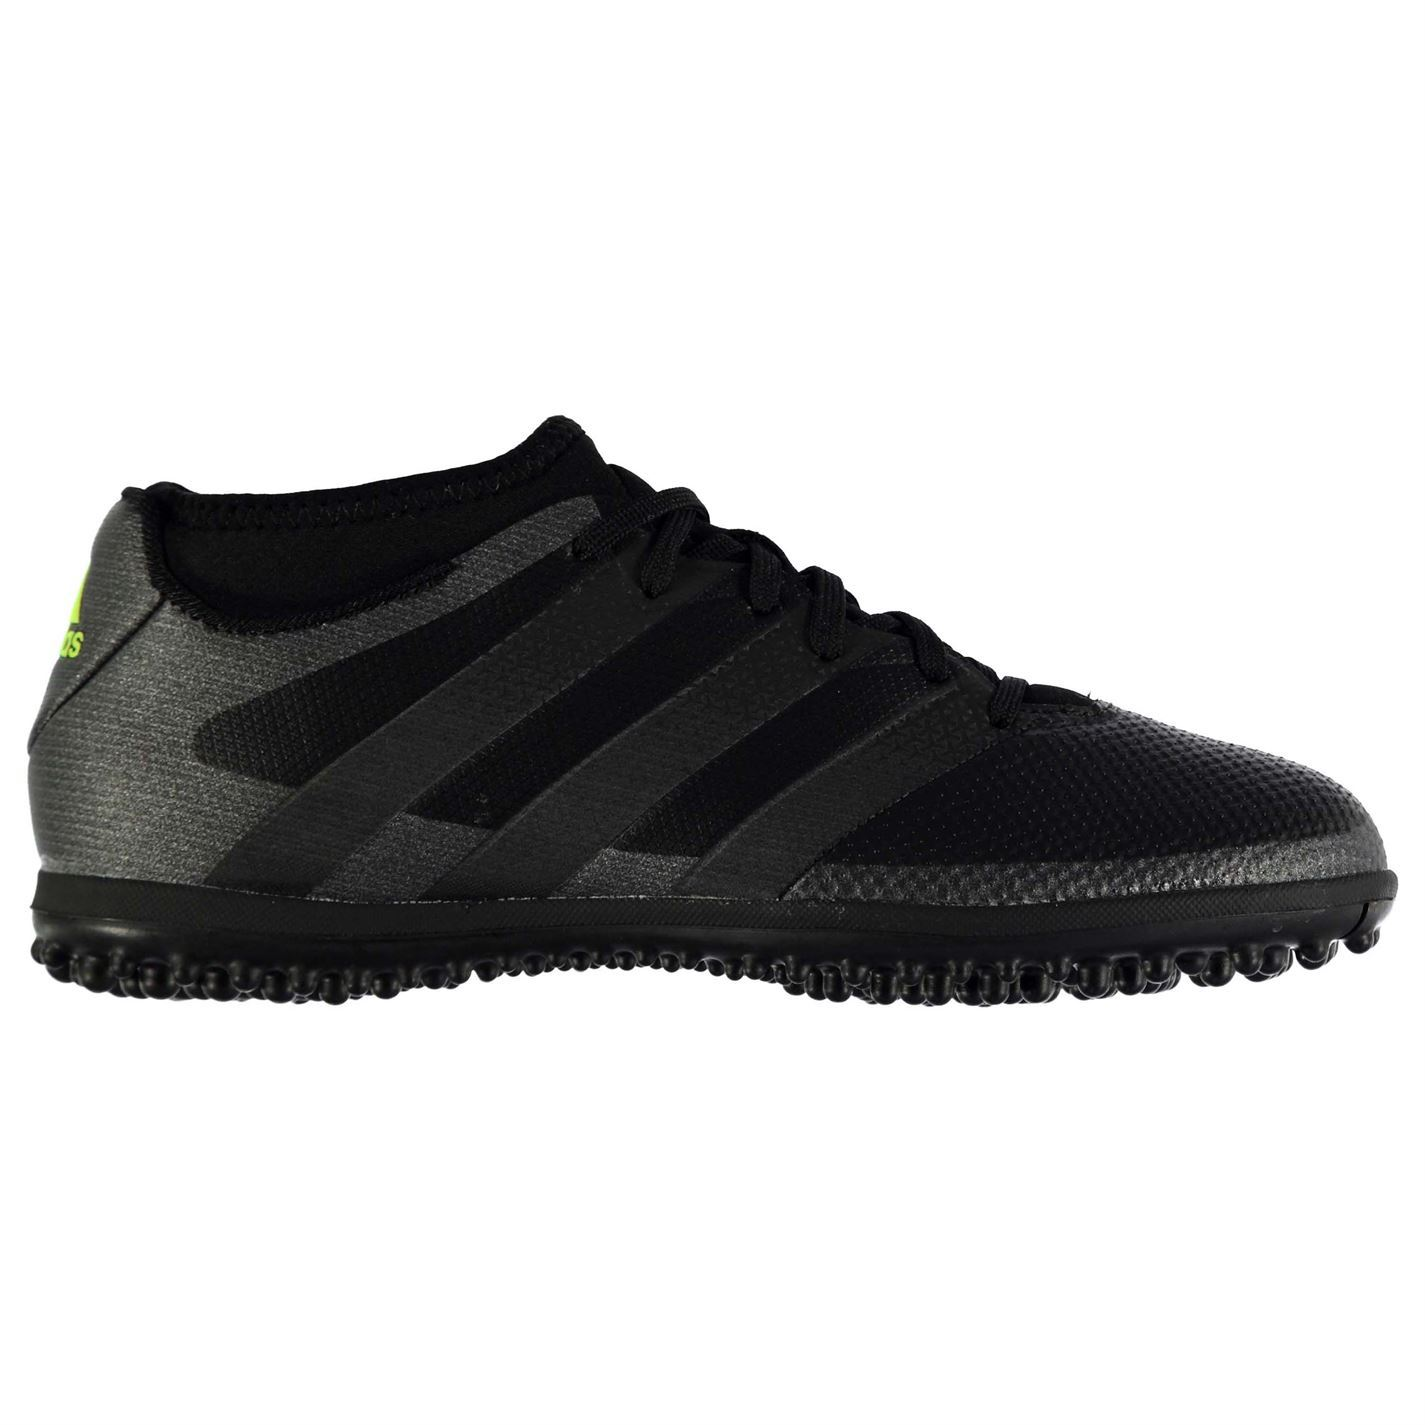 finest selection c64ba d0b16 adidas Mens Ace 16.3 Primemesh Astro Turf Trainers Football Boots Lace Up  Shoes